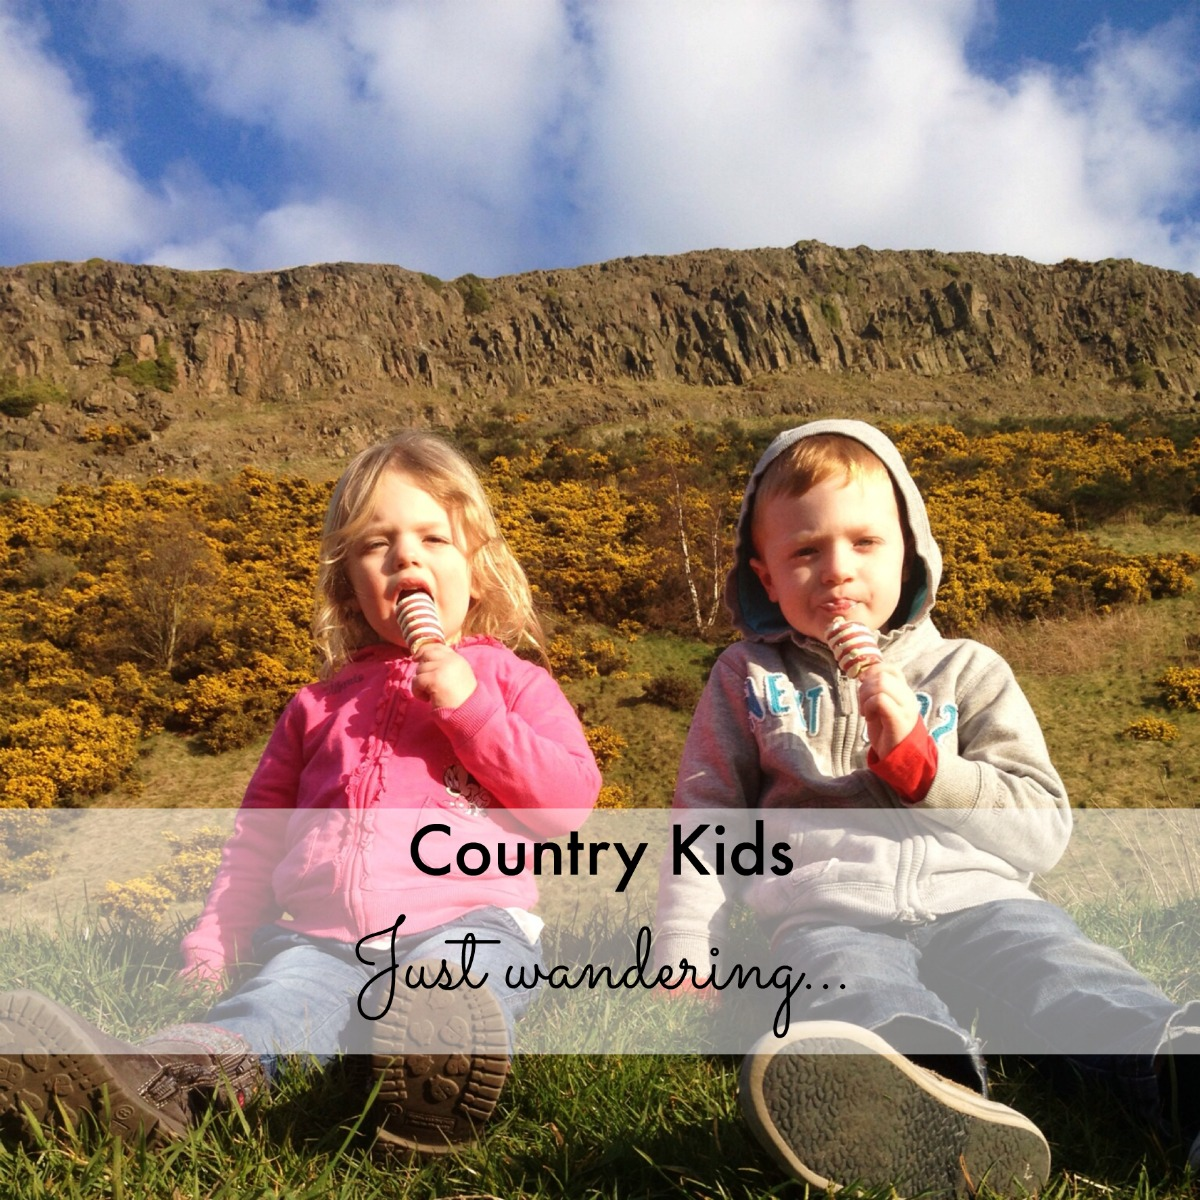 Country Kids: just wandering…